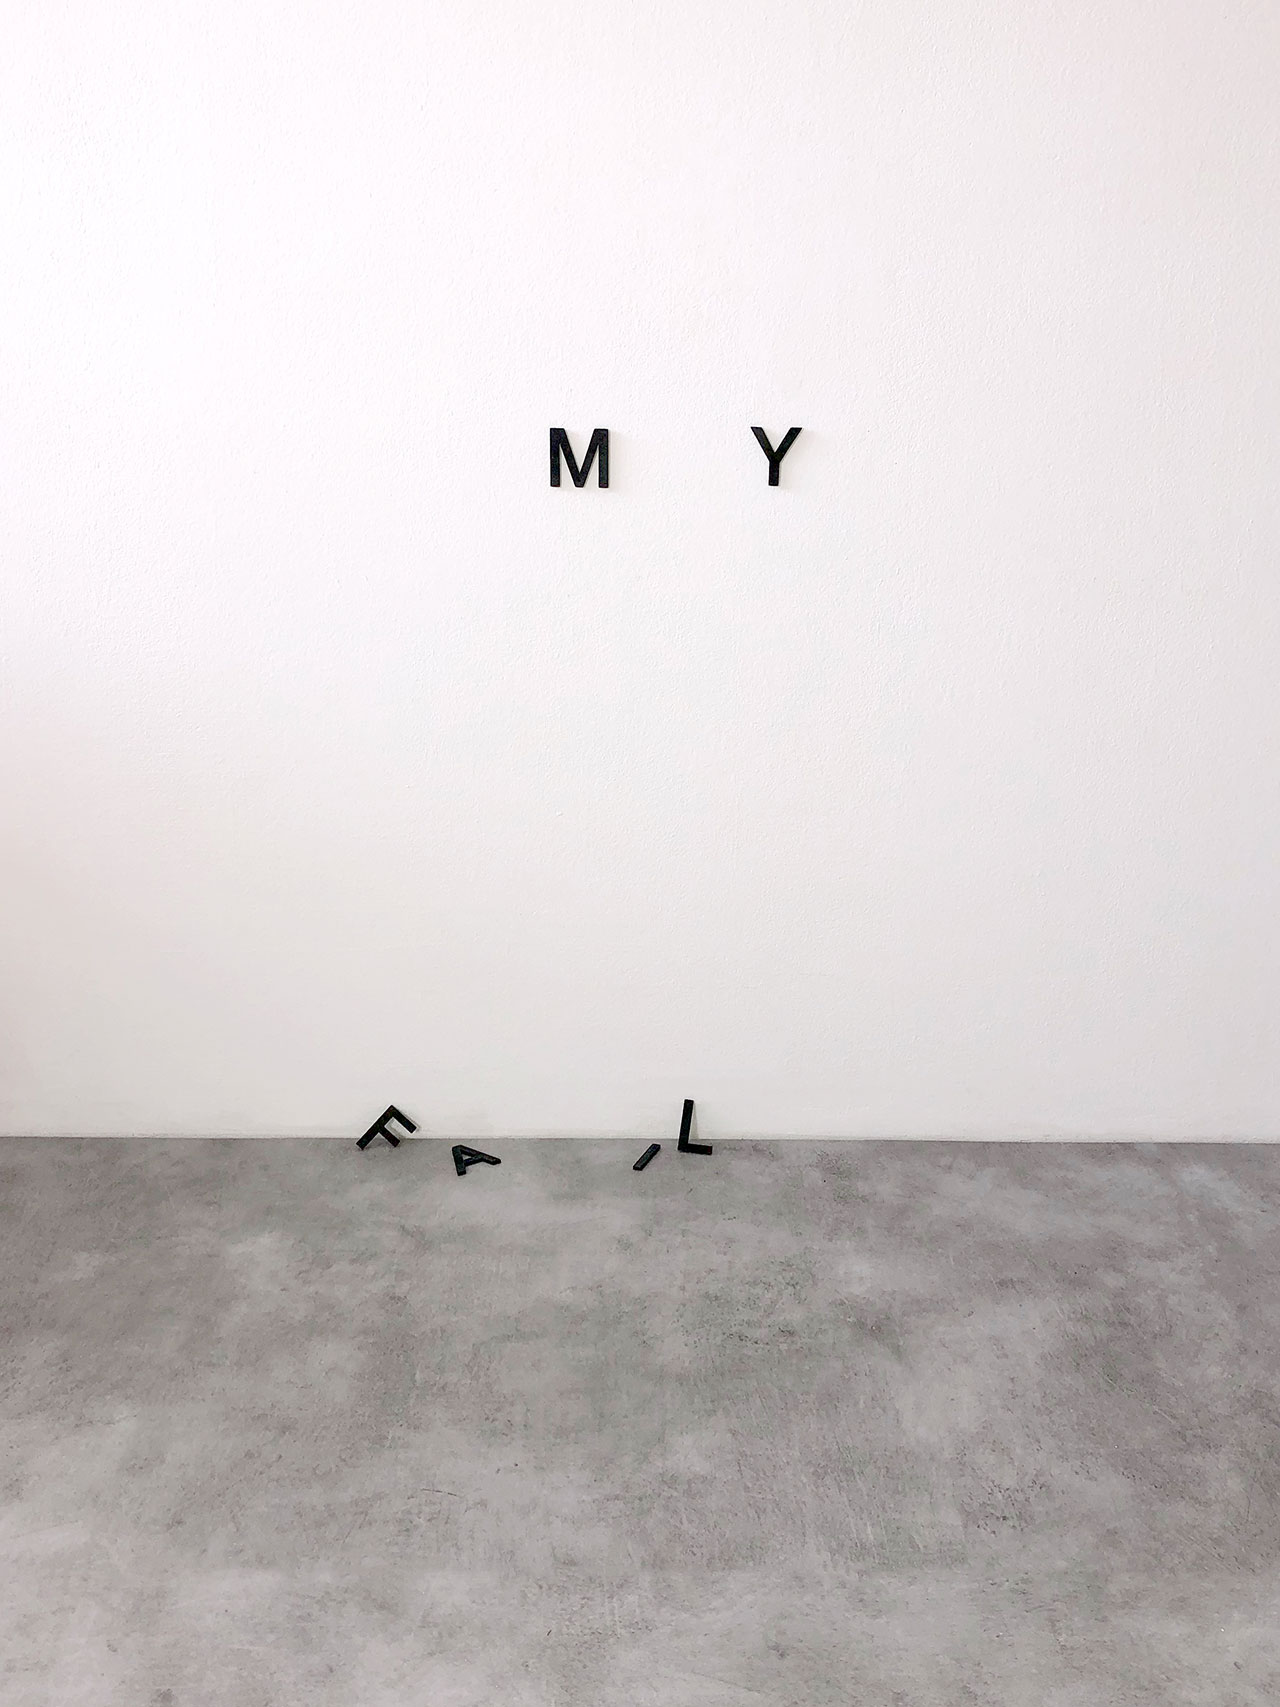 Anatol Knotek, family, text-installation© 2013/2016.